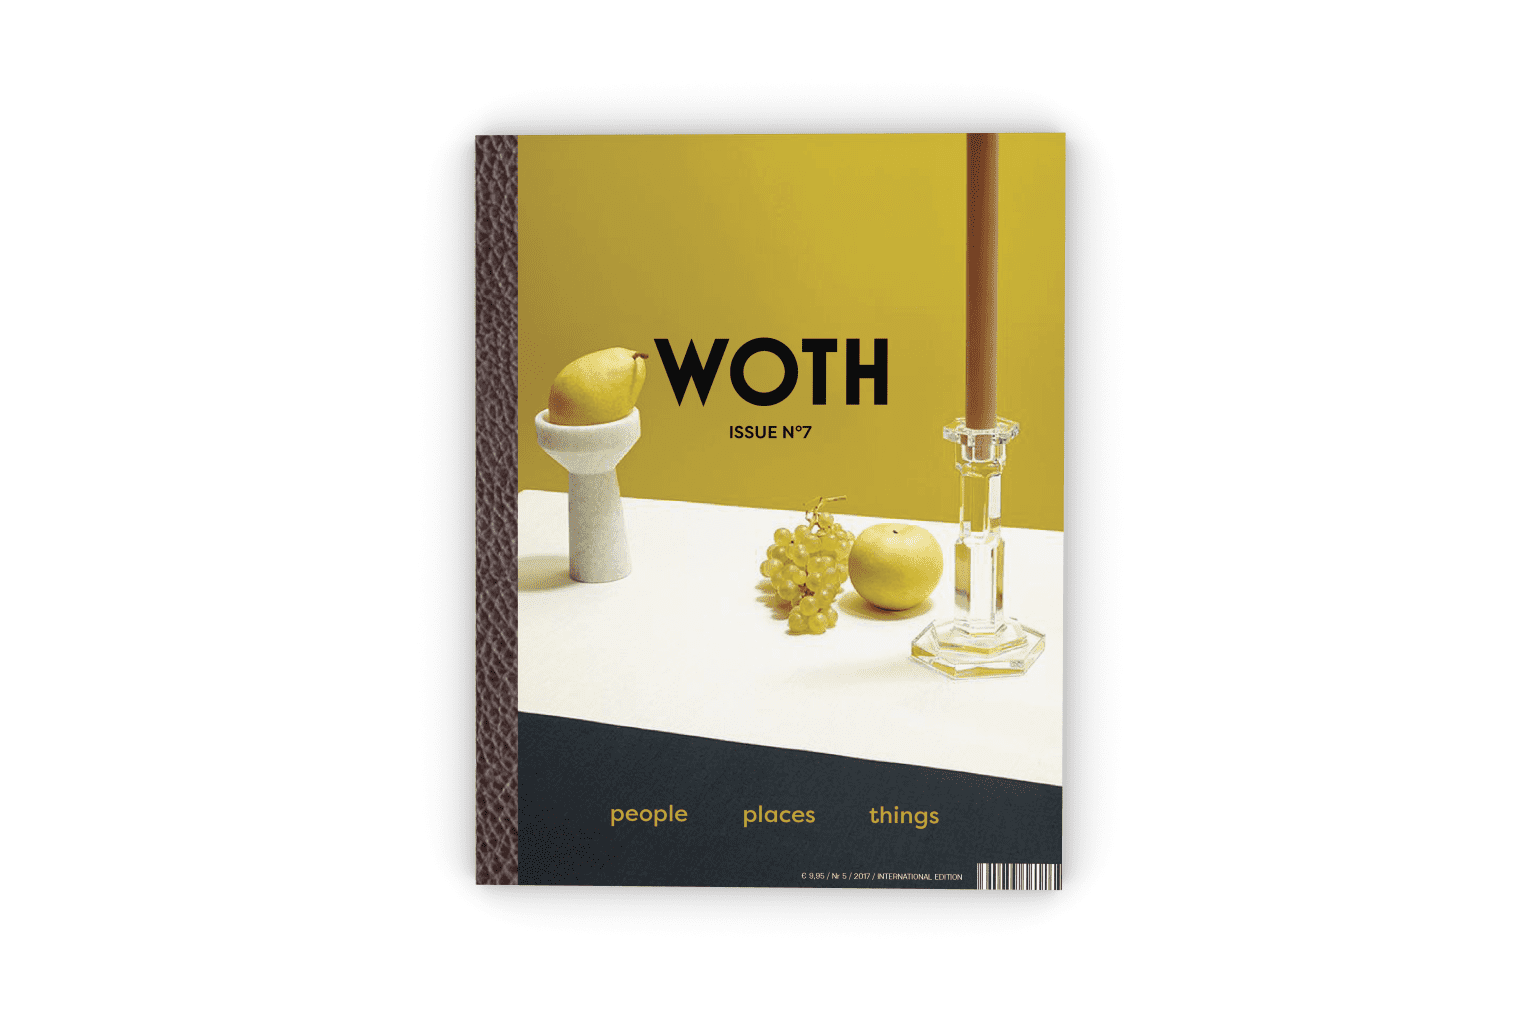 Woth Magazine Redesign